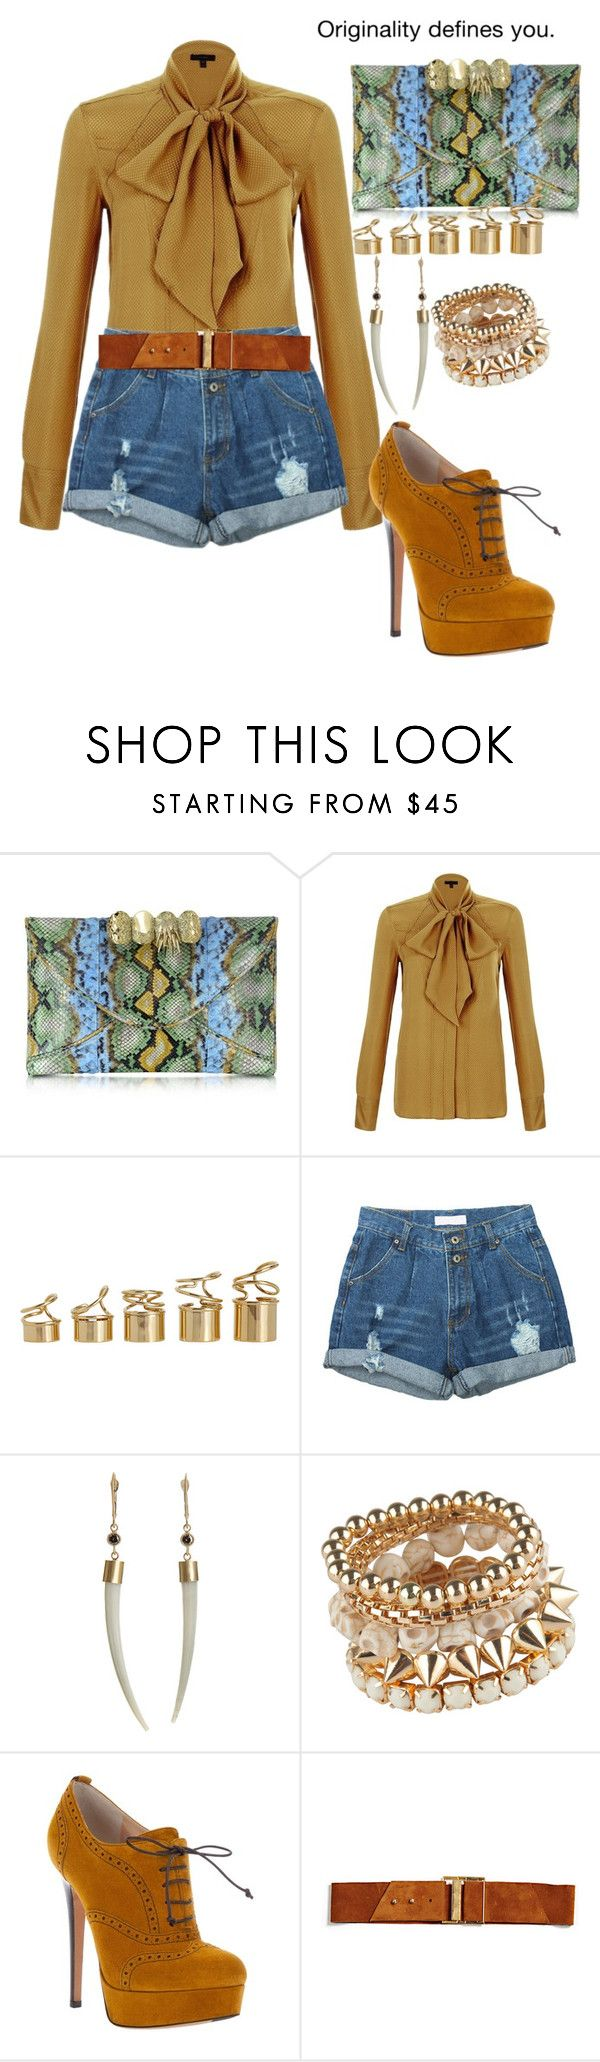 """""""Daytime look"""" by highfashionfiles ❤ liked on Polyvore featuring Maison Du Posh, Belstaff, Balenciaga, Monique Péan, Ballin, Elegantly Waisted and chiffon bow blouse distressed high waisted denim shorts oxford pumps snakeskin clutch"""